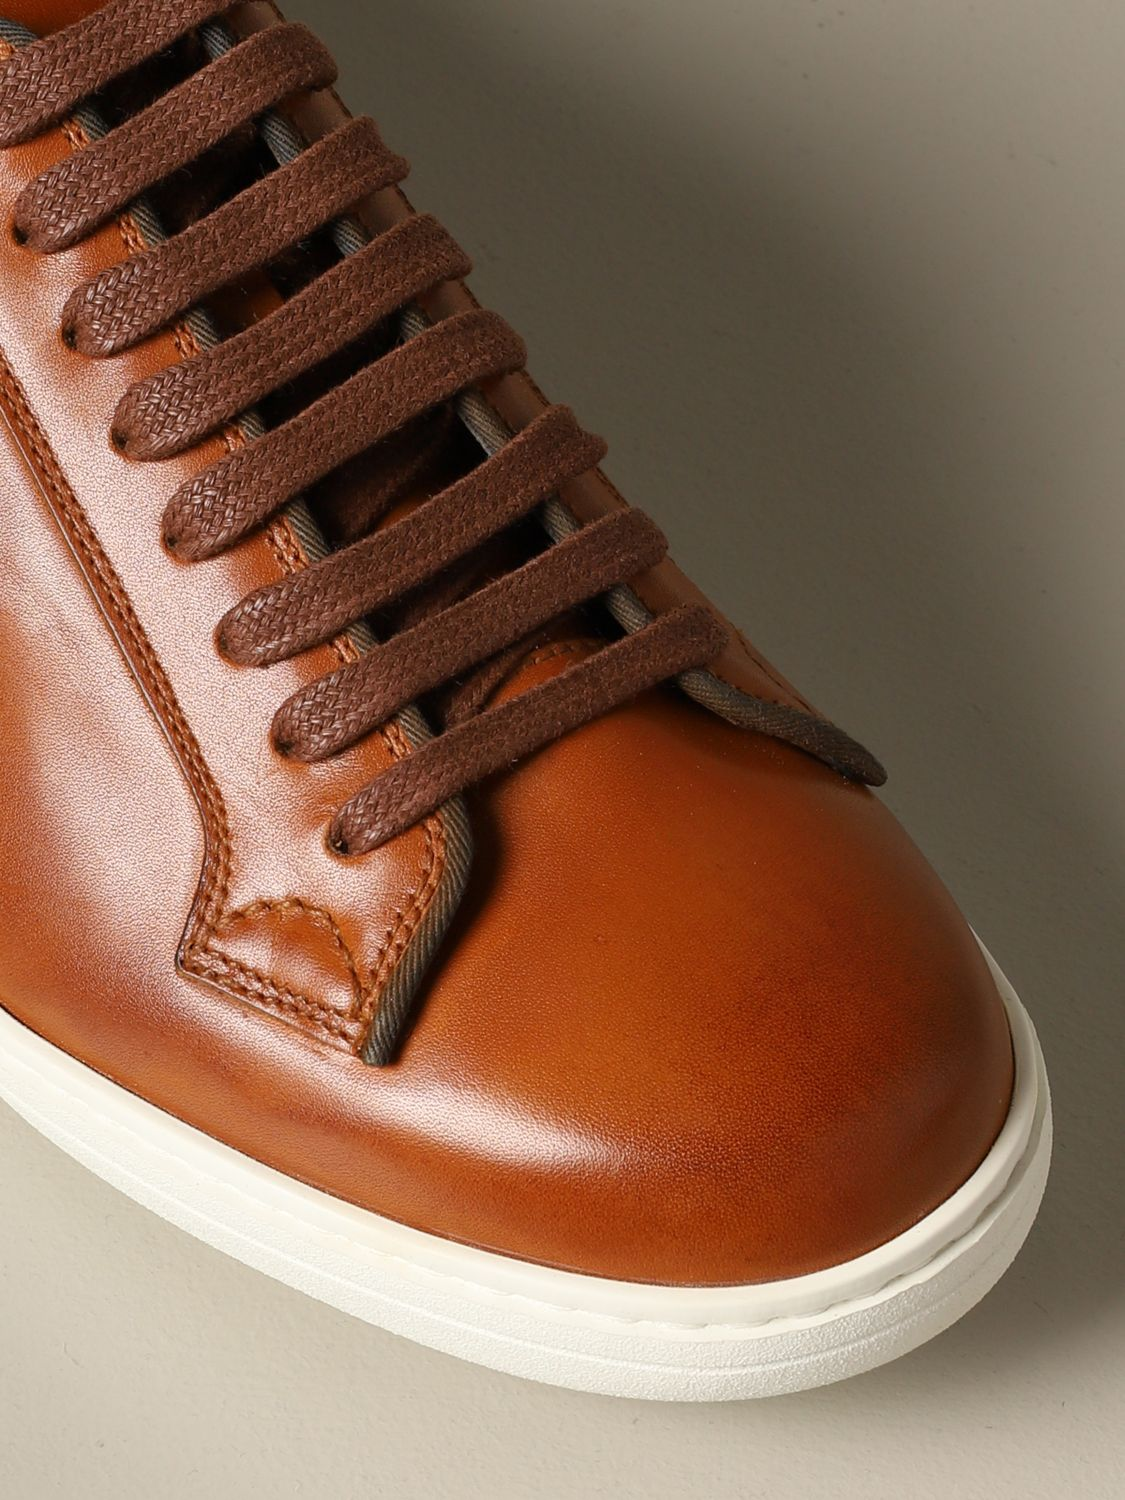 Sneakers Church's: Church's leather sneakers leather 3